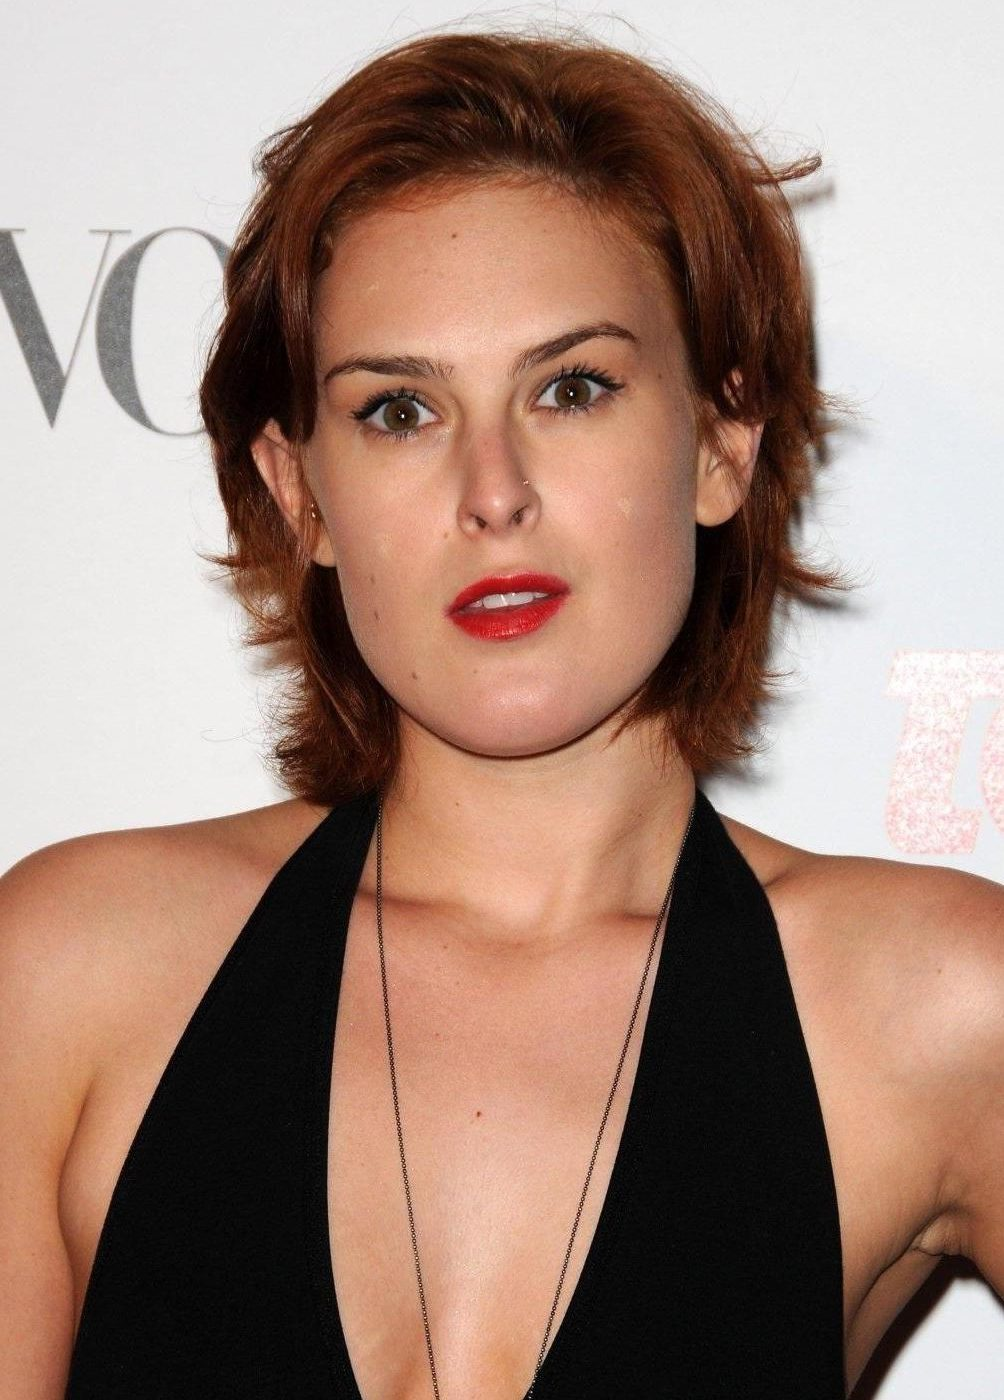 Rumer Willis 2 e1544783768812 Celebs Before And After Surgery